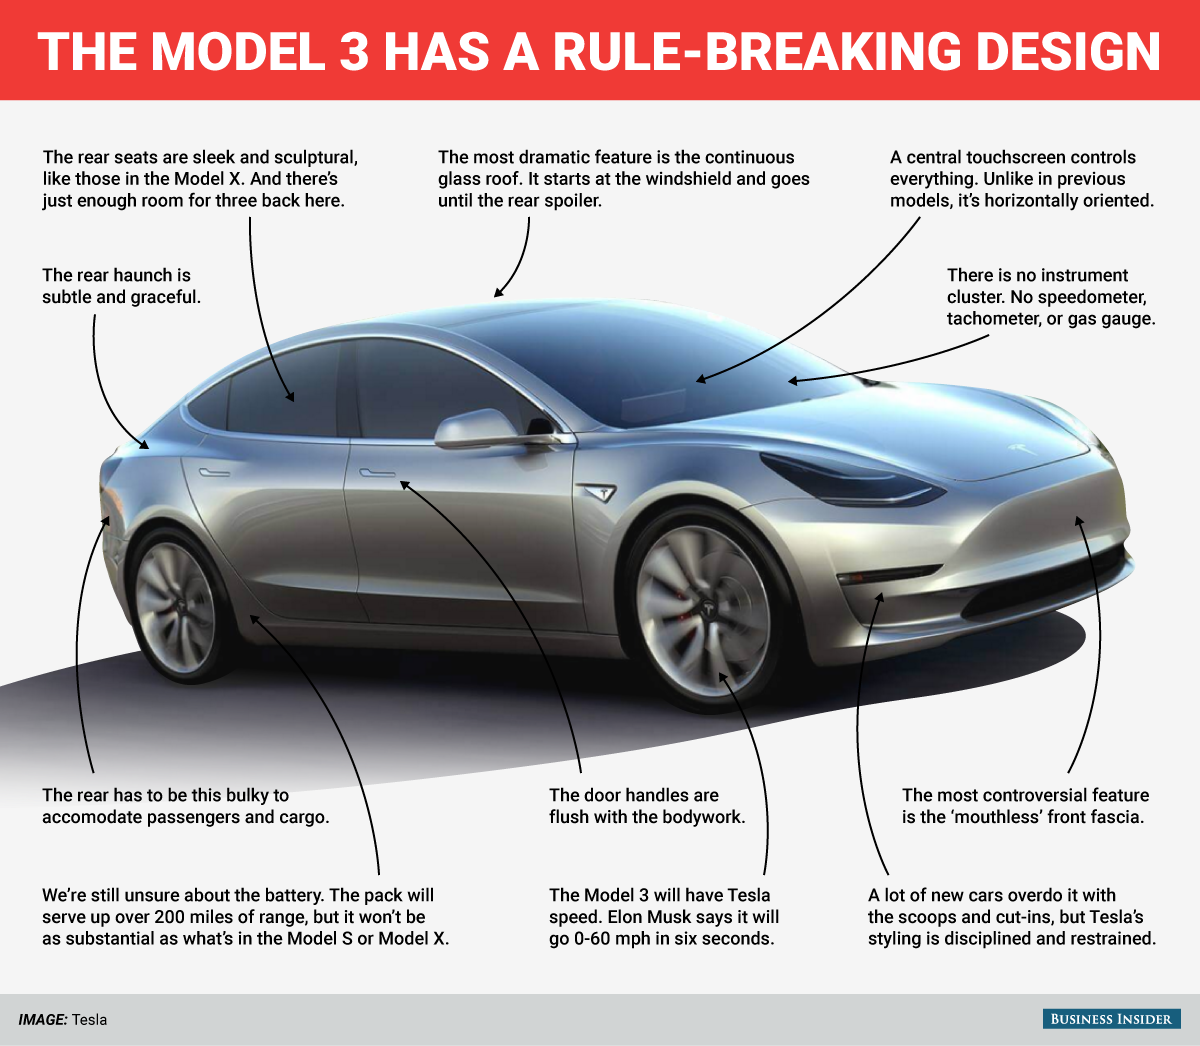 All the features that make the Tesla Model 3 so cool -- and controversial | Business Insider